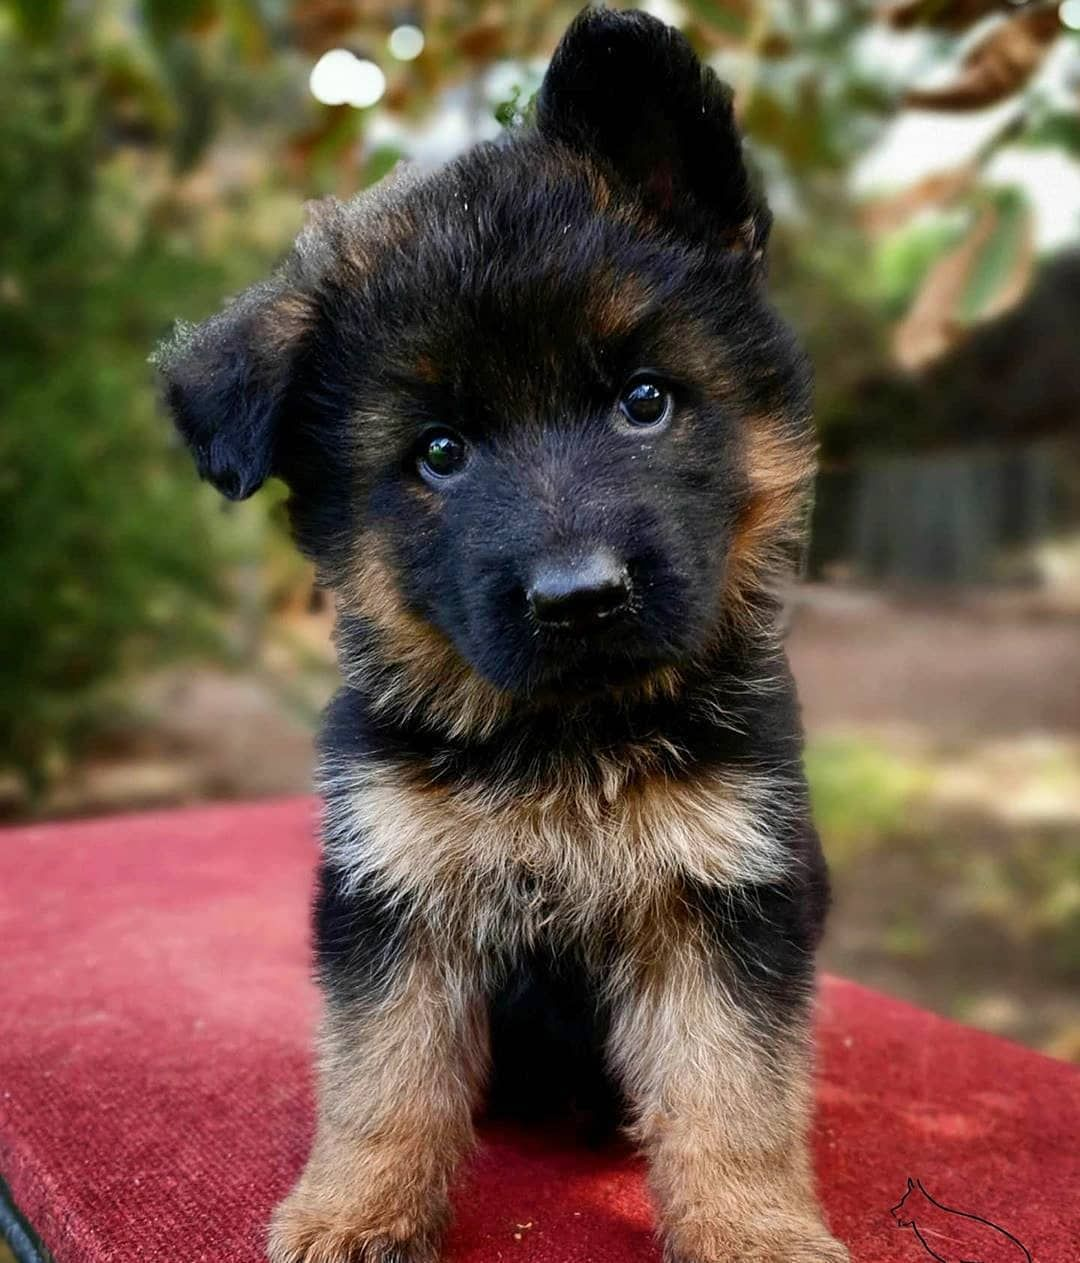 Shepherds Forever On Instagram Look At This Tiny Beauty Credit By G German Shepherd Puppies Training Cute Dogs Breeds Cute German Shepherd Puppies